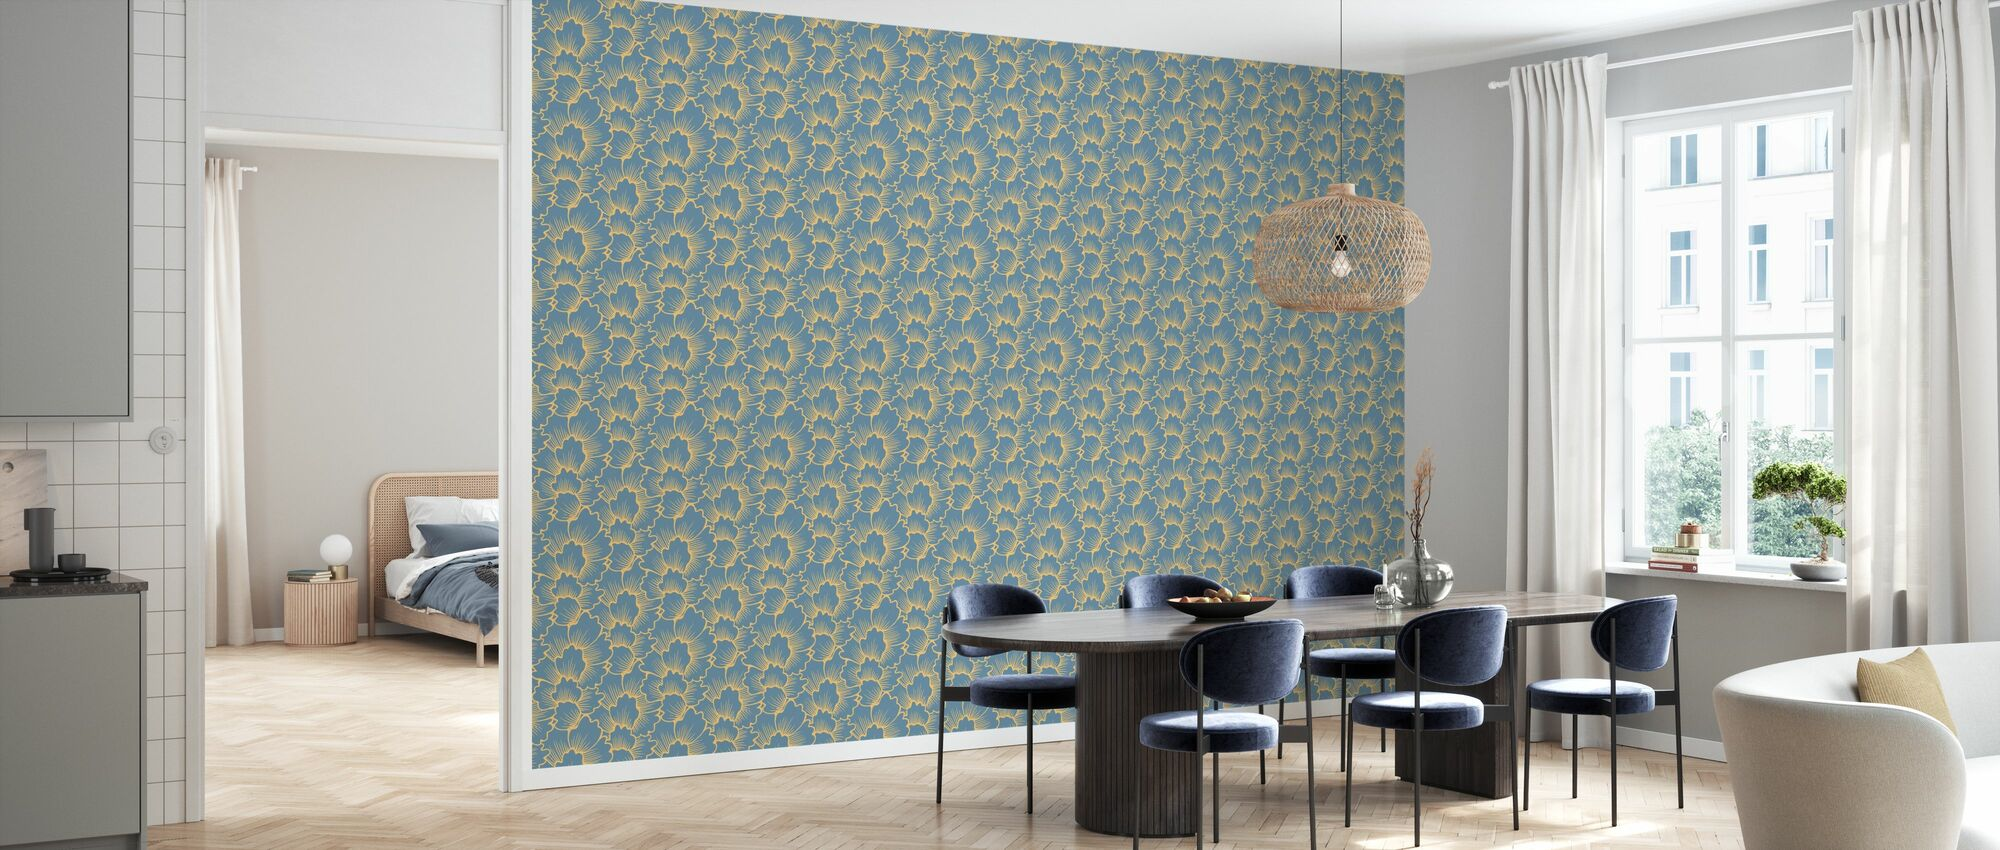 Mostly Coral Yellow on Blue - Wallpaper - Kitchen